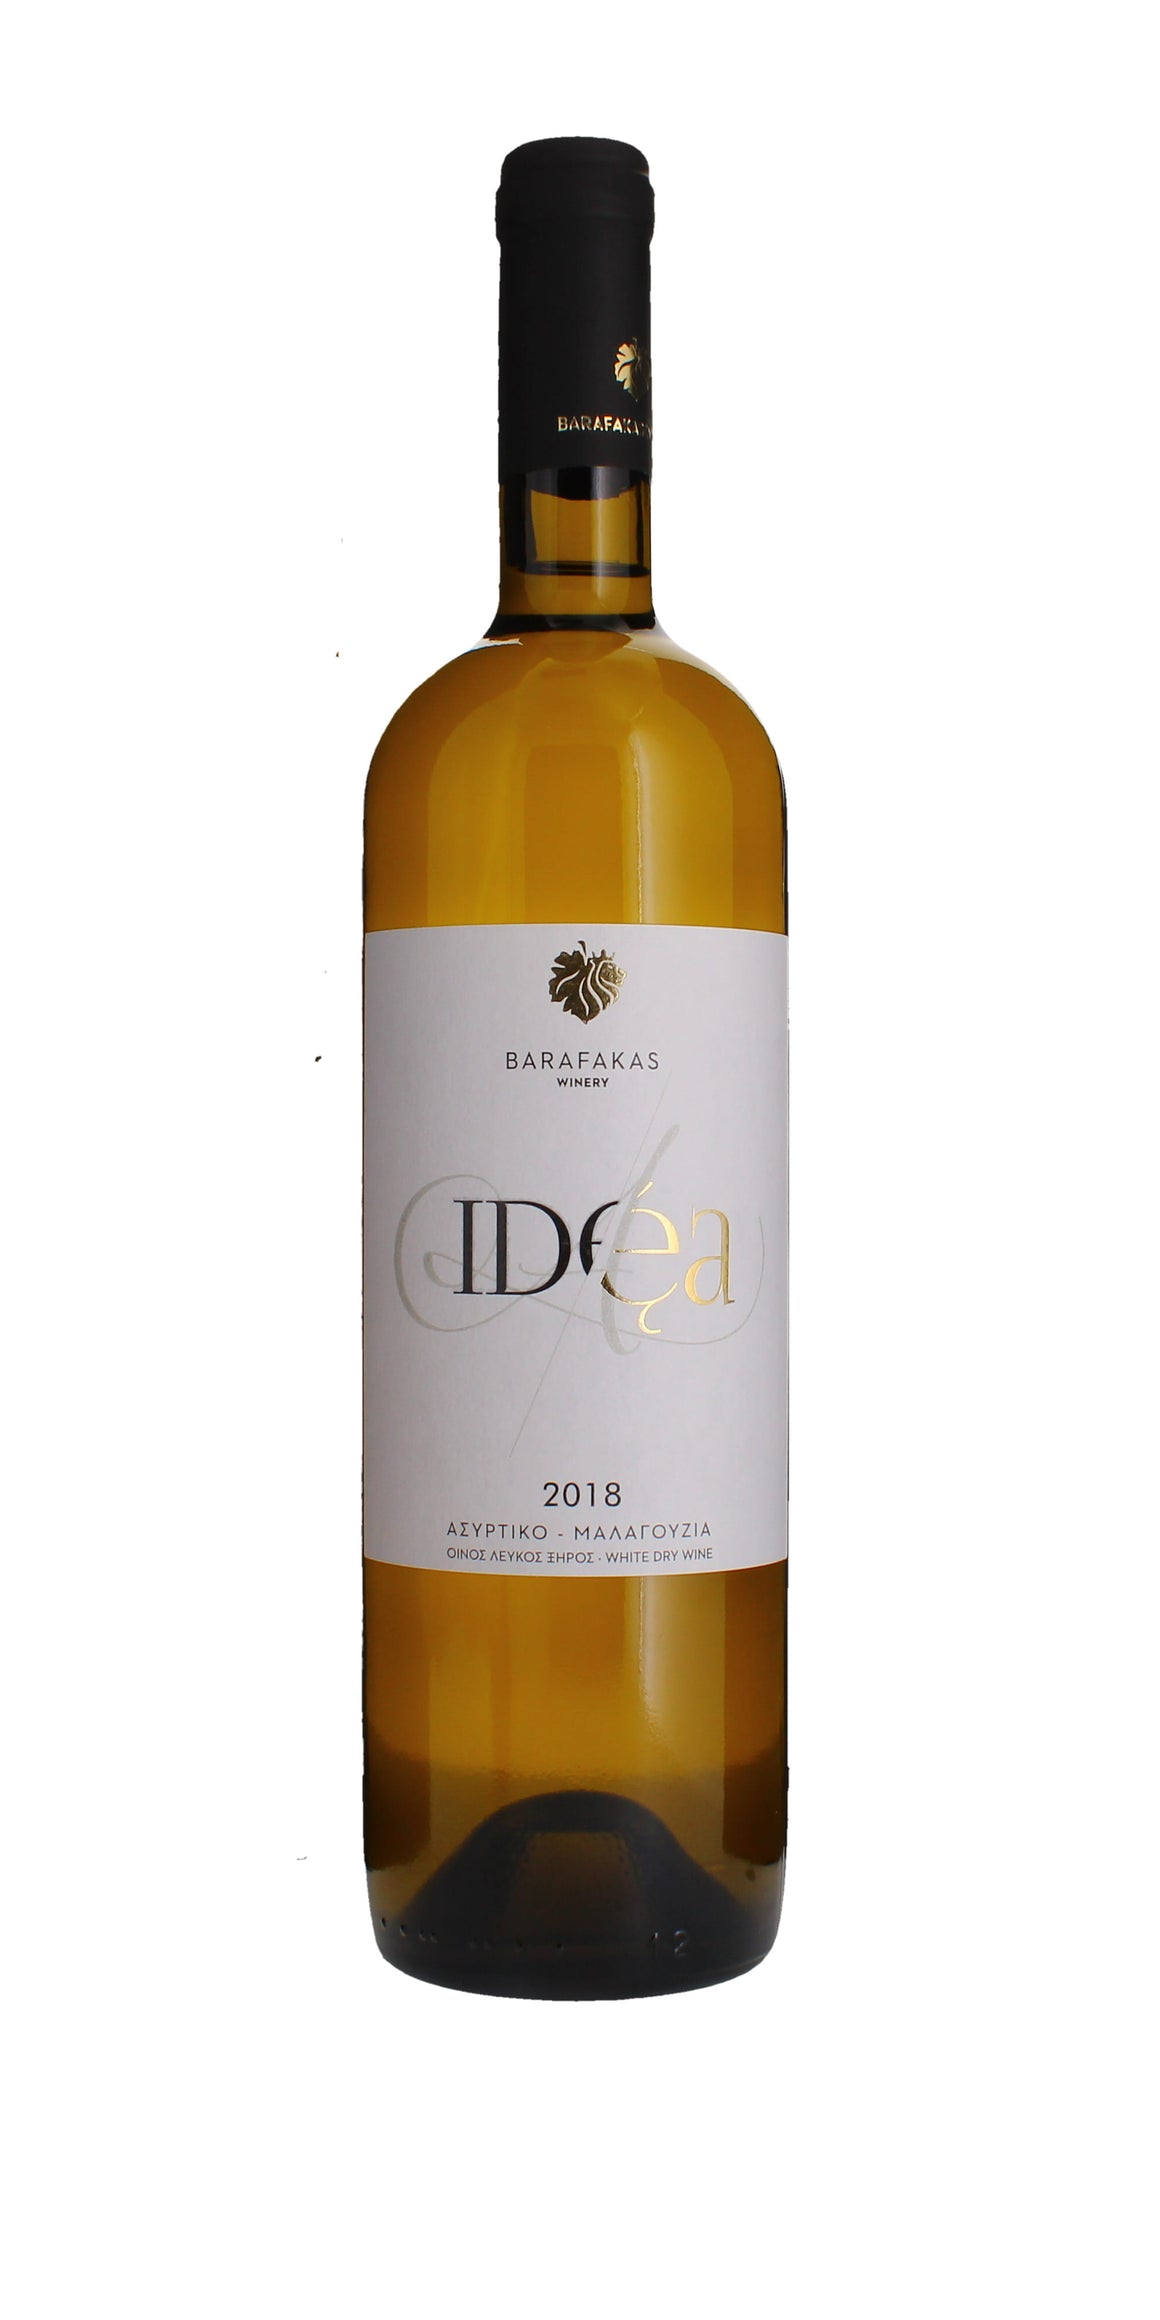 Barafakas Idea White 2018